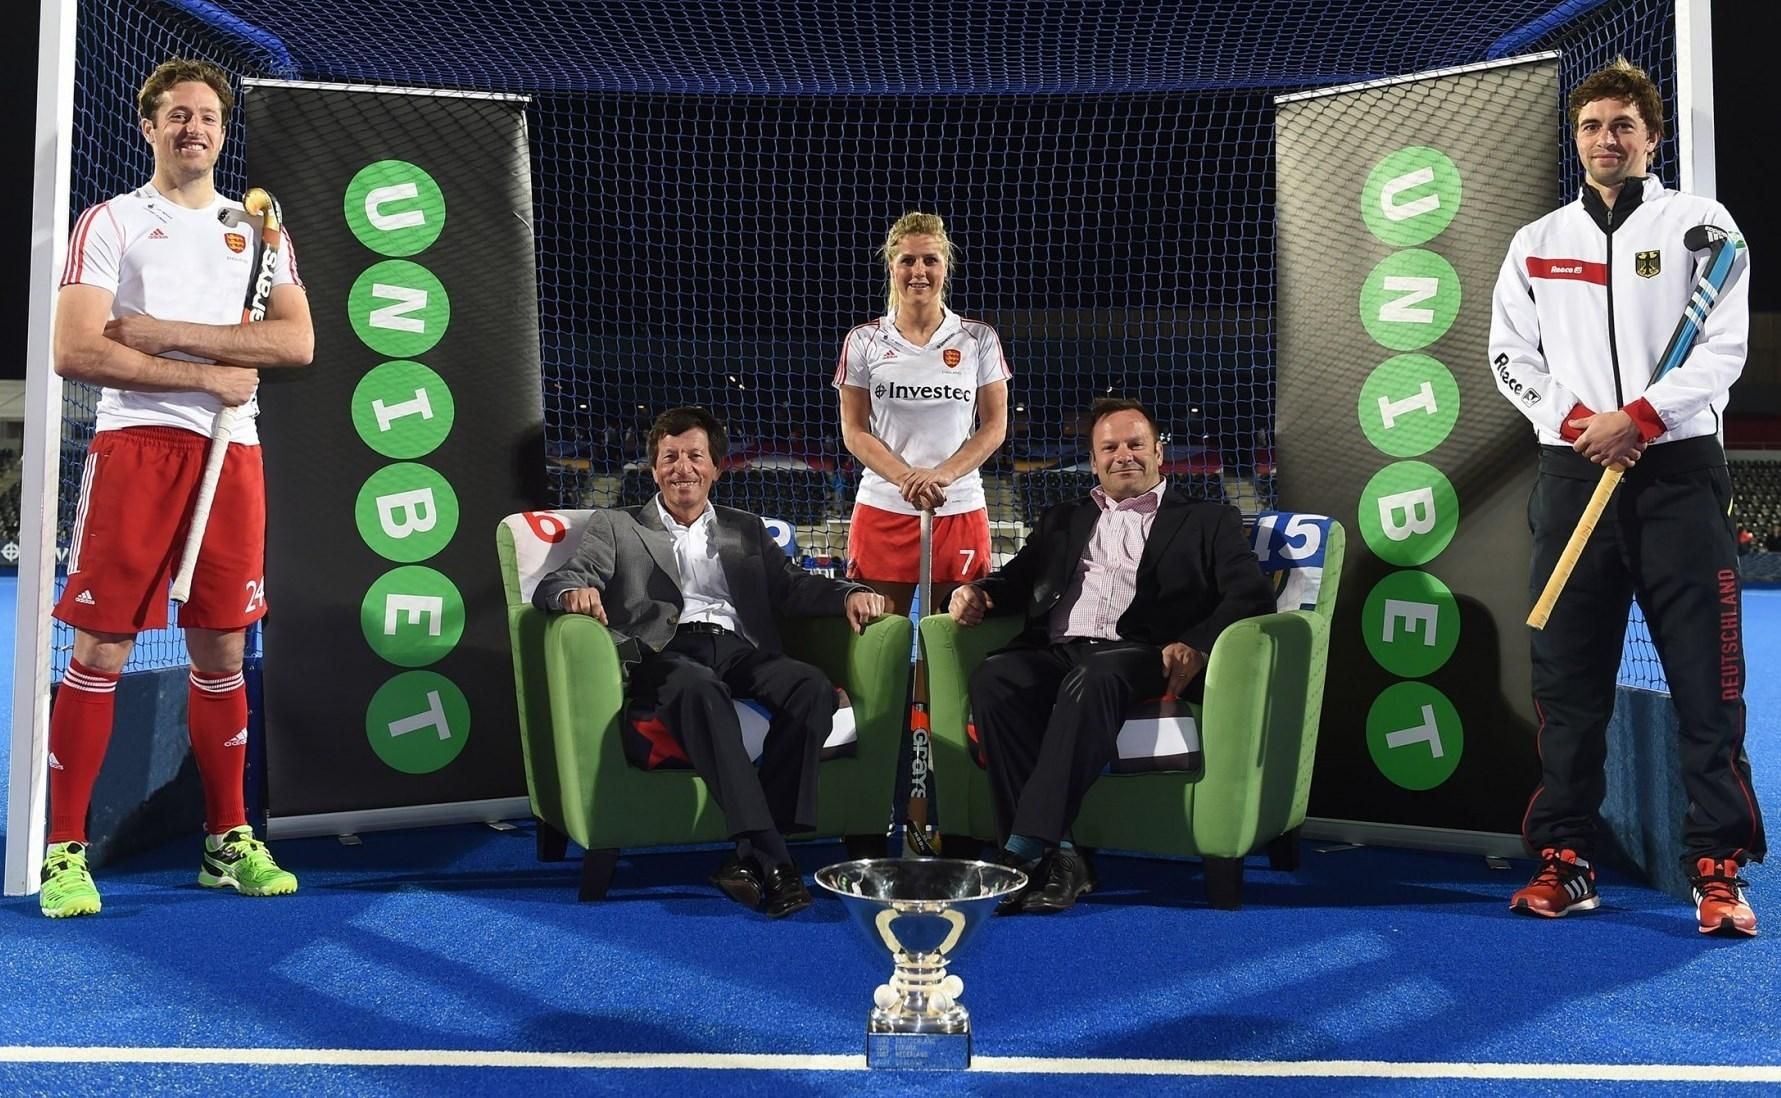 The 2015 european hockey championships are to take place at the olympic park as a legacy to london 2012